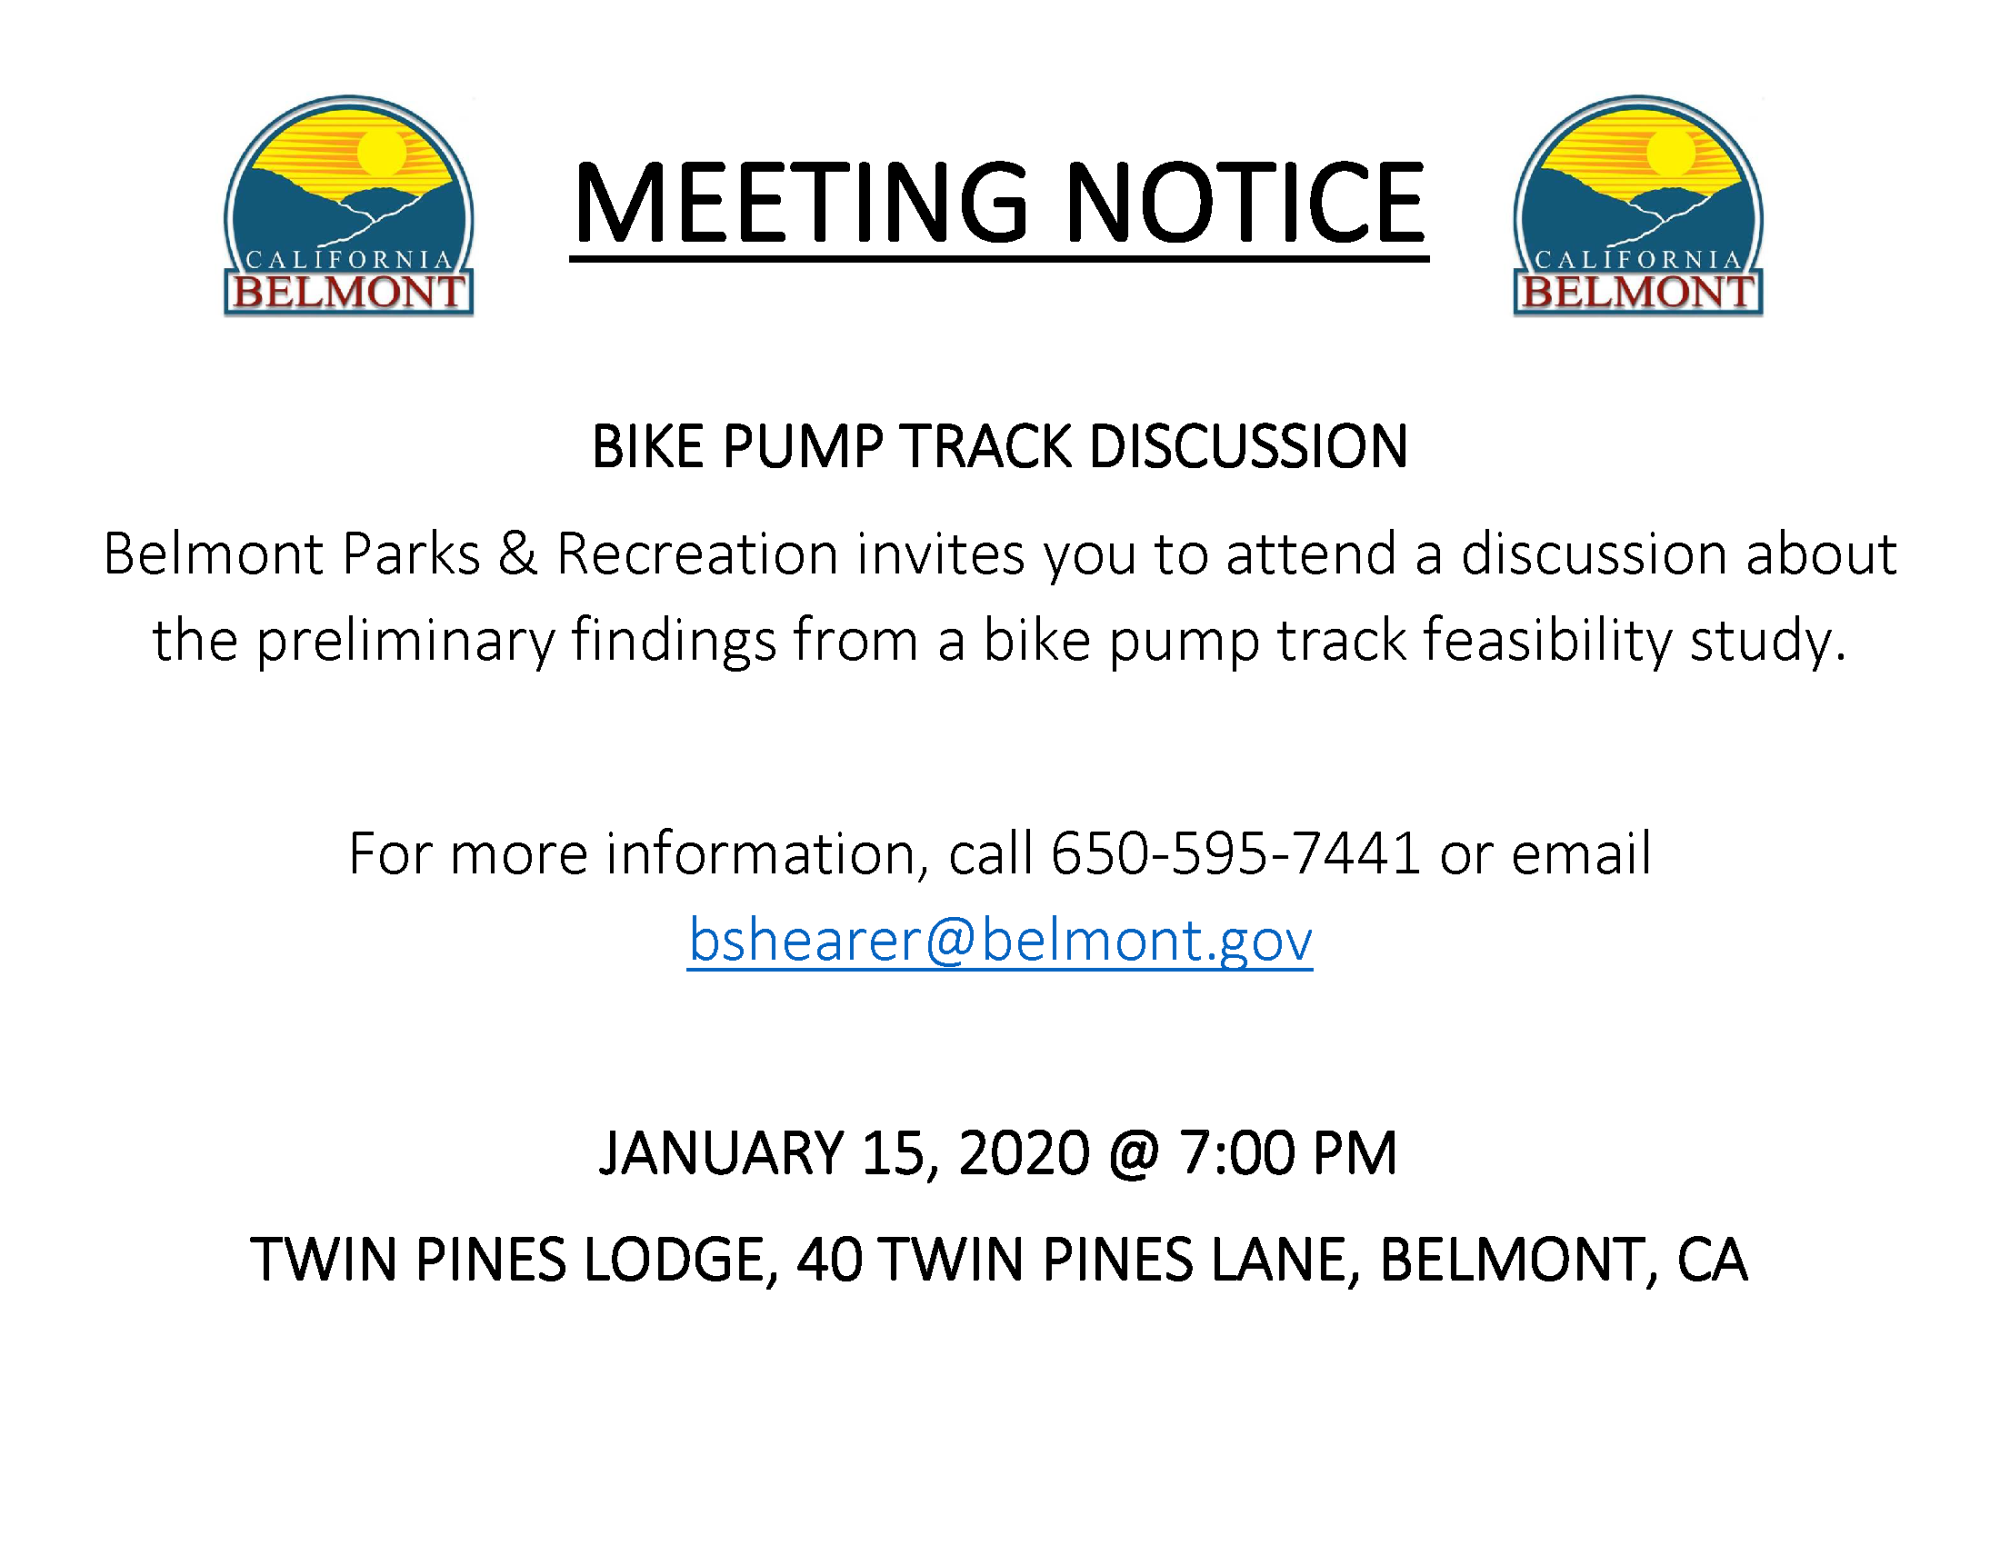 Bike Pump Track Discussion Meeting Notice